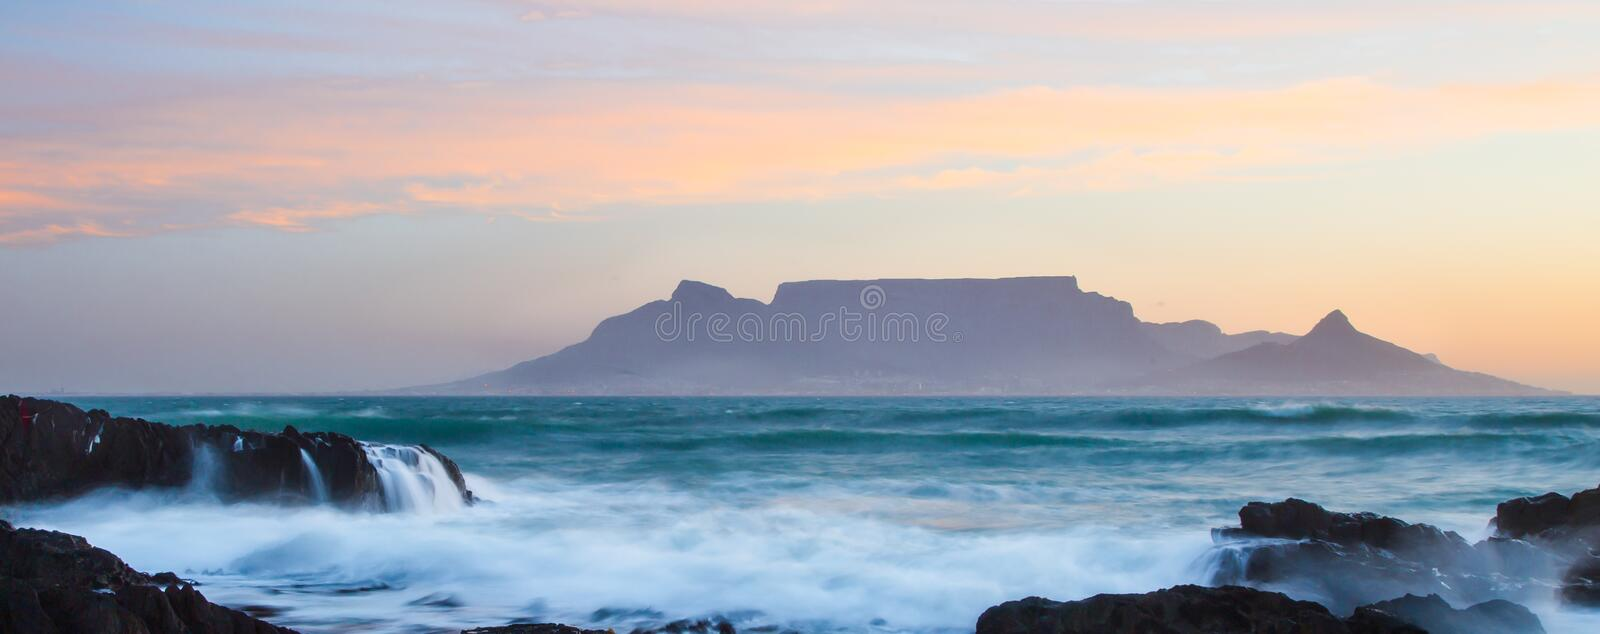 Table Bay Mountain stock photography